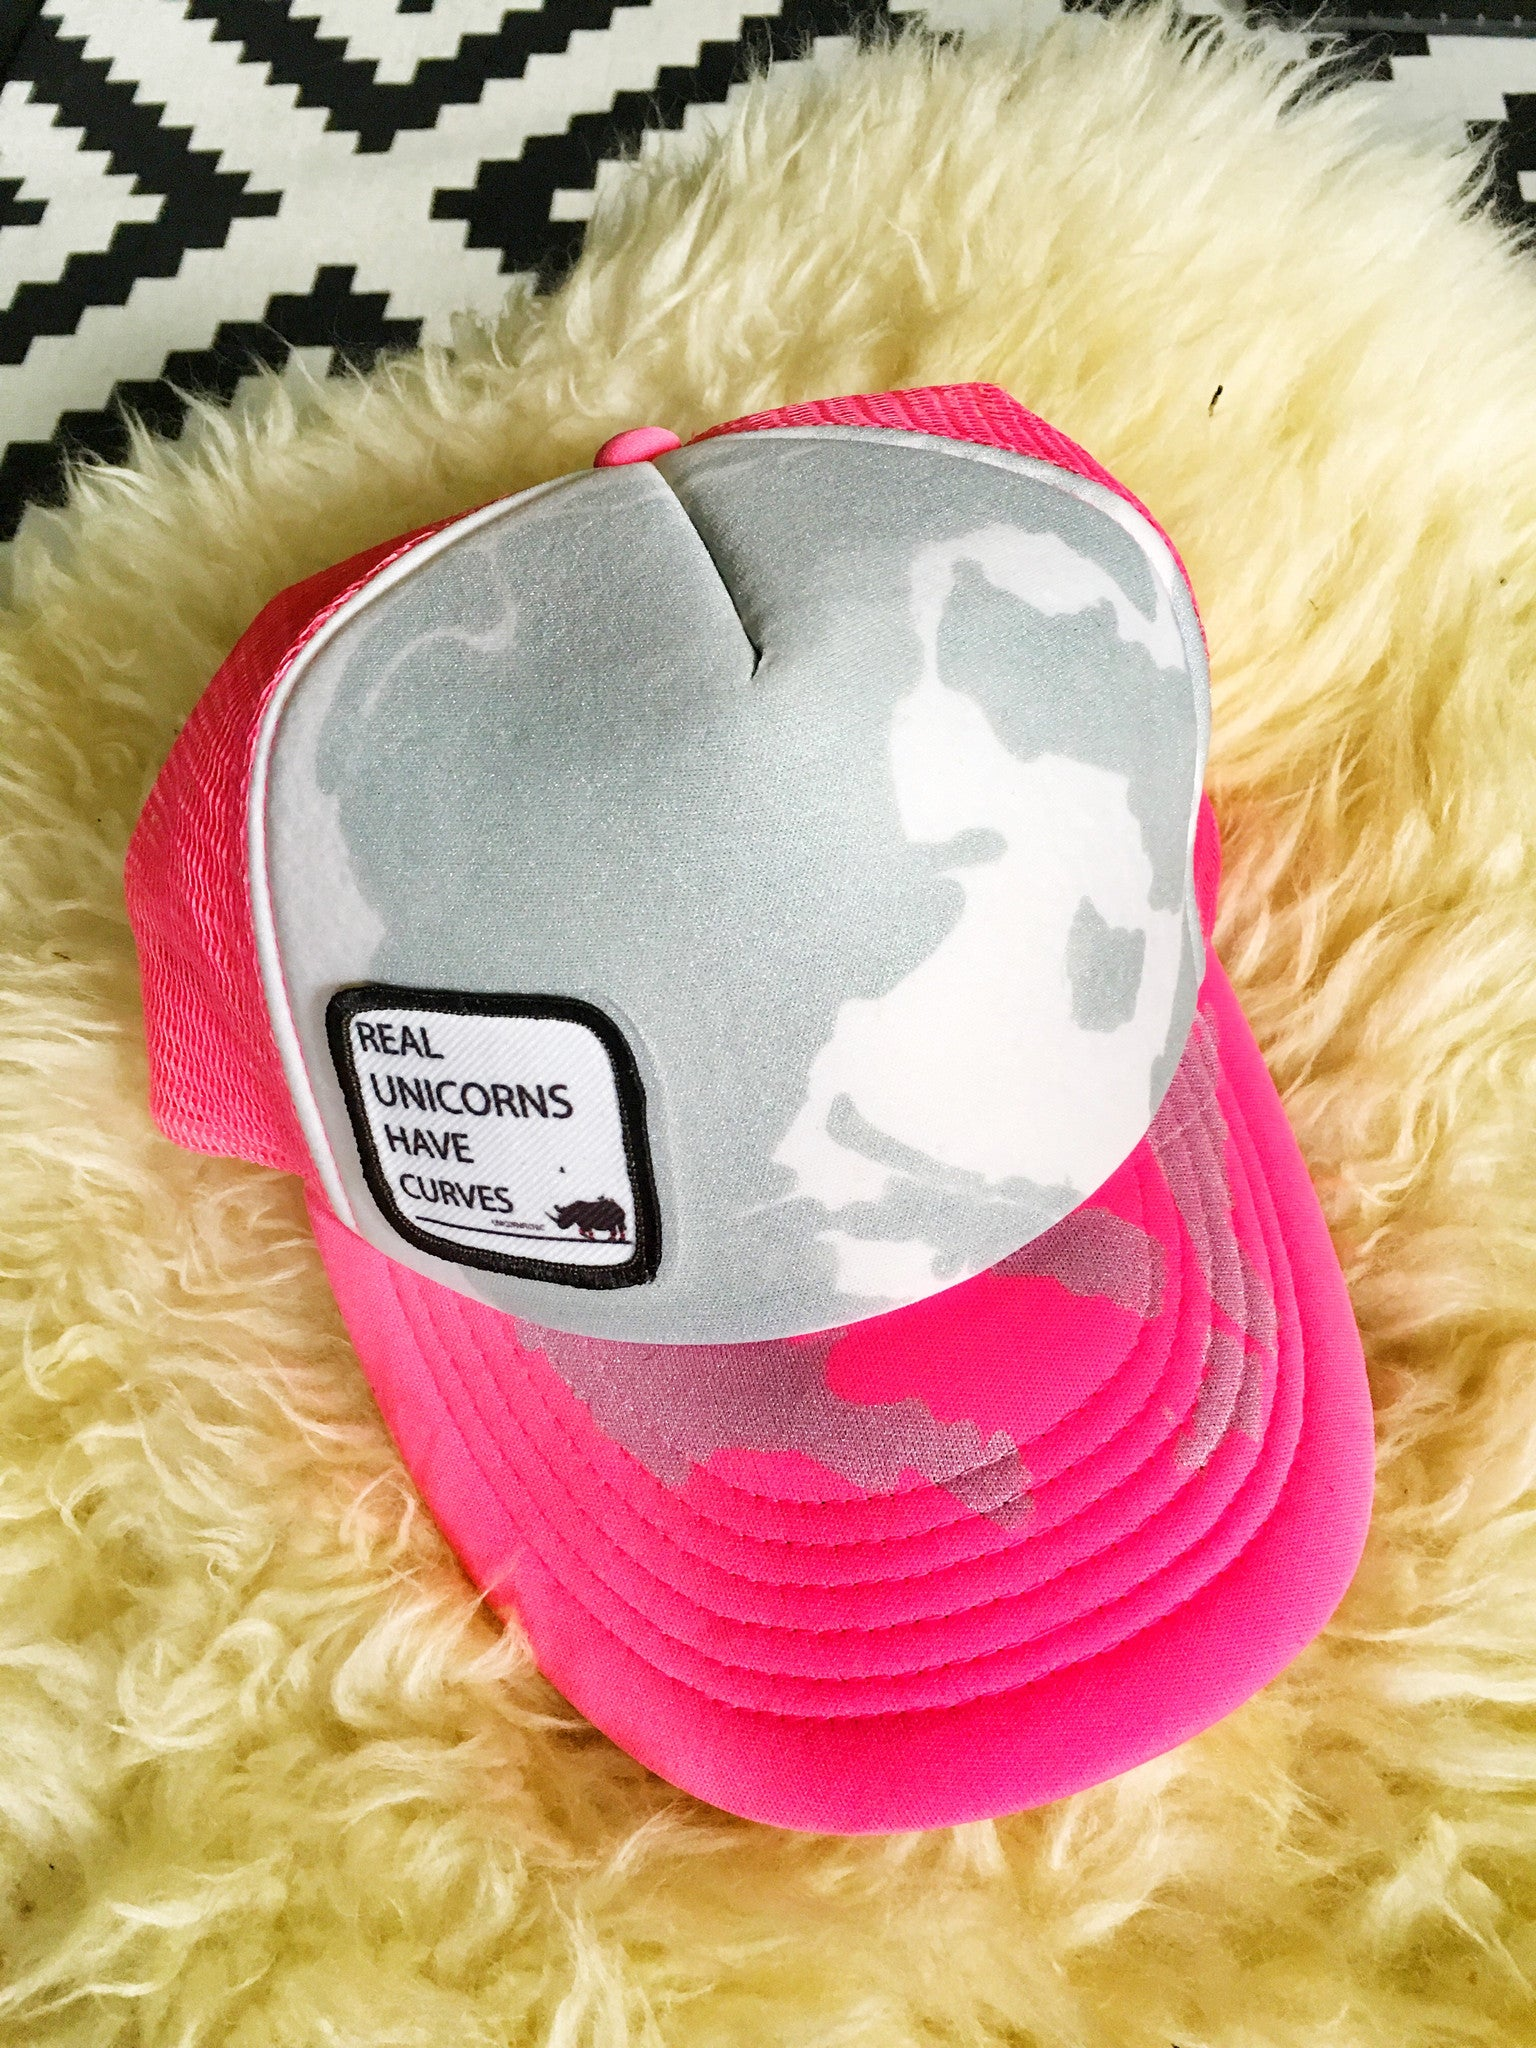 Real Unicorns Have Curves skier hat designed by Lynsey Dyer for Unicorn Picnic